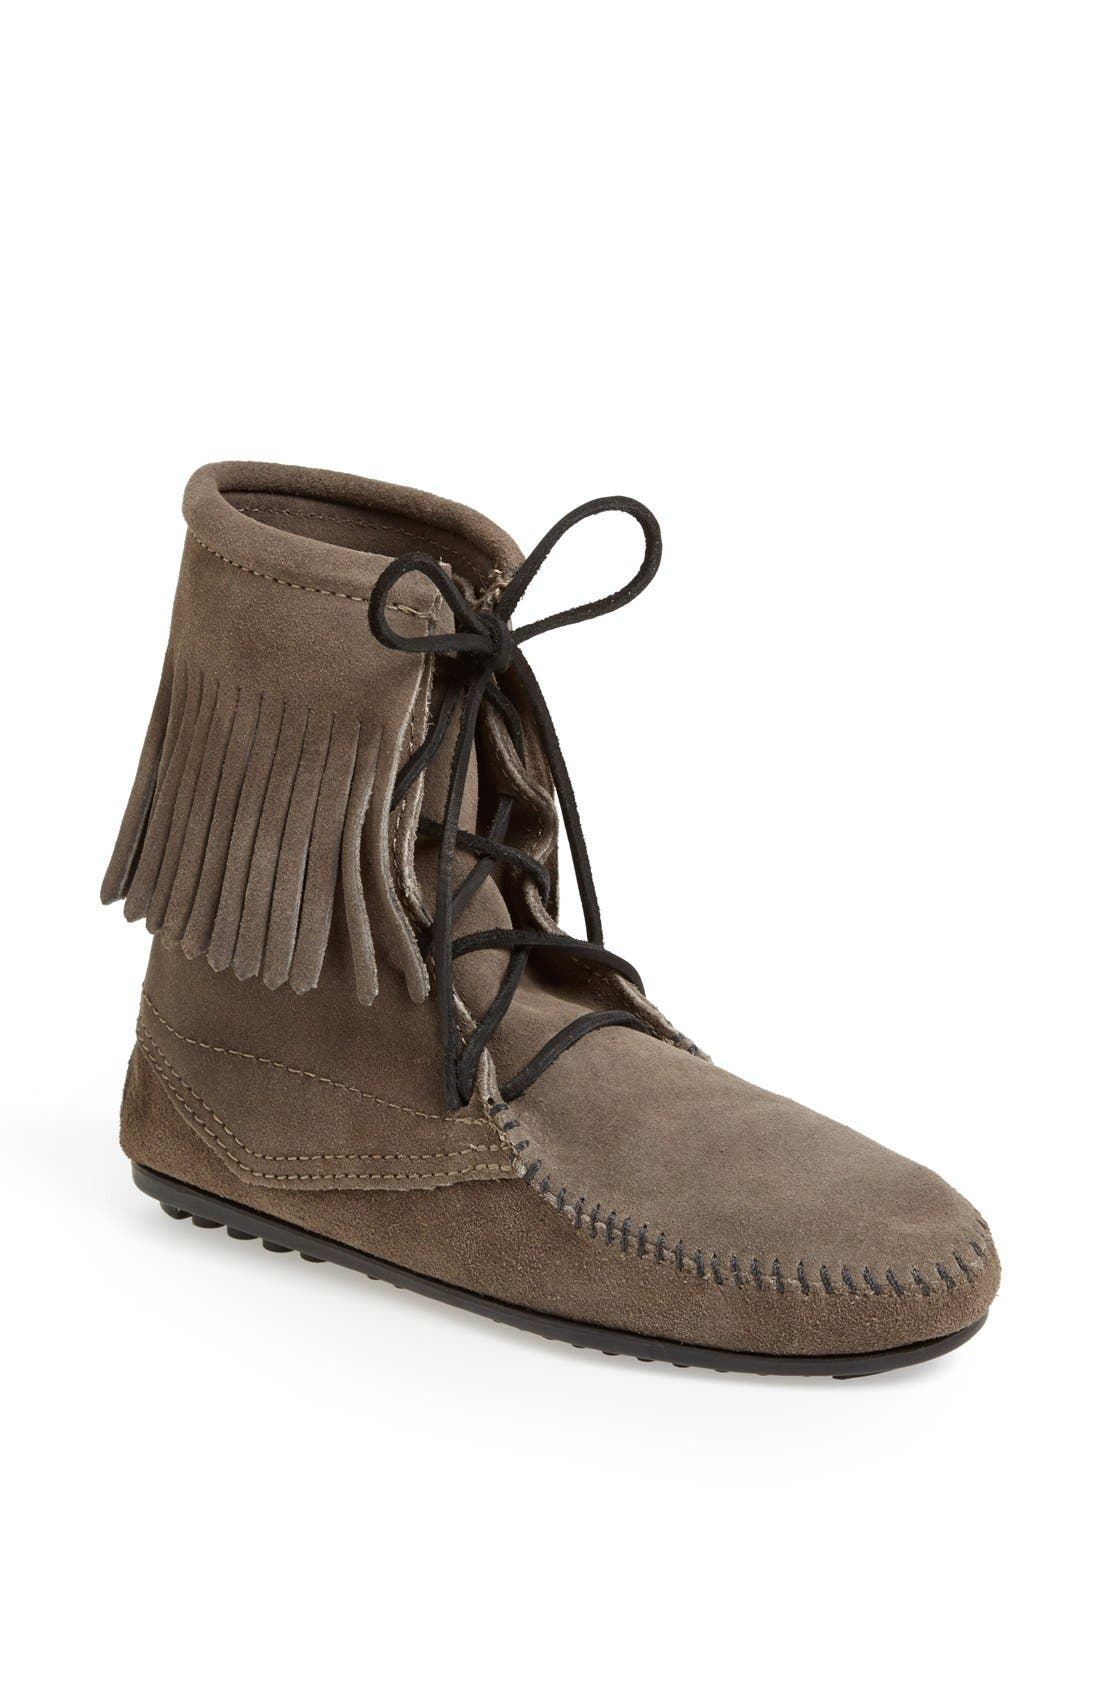 Main Image - Minnetonka 'Tramper' Fringed Suede Ankle Bootie